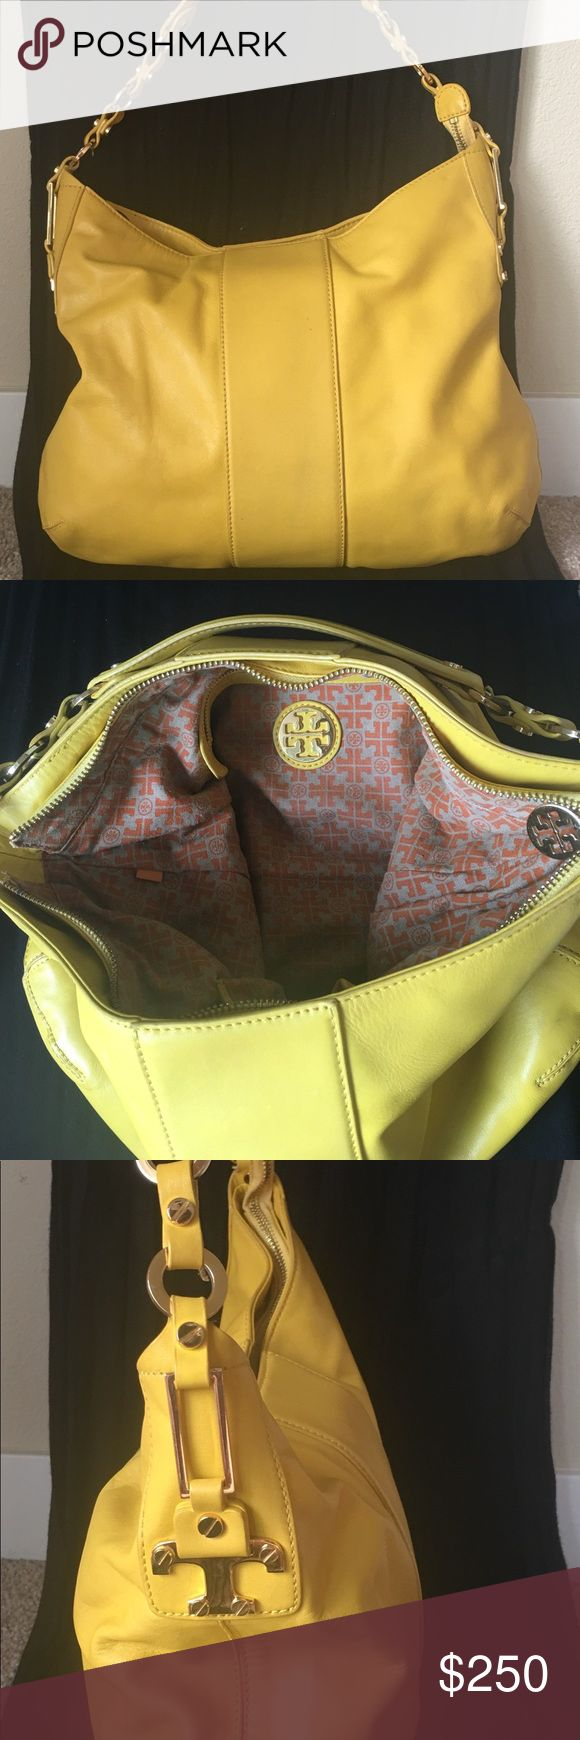 Tory Burch bag with matching wallet! Pre owned authentic Tory Burch hand bag with matching yellow wallet by Beckon. Both in great condition. There is sign of normal wear to both items but no damage or discoloration to either.  Yellow color with gold hardware. There is one large interior zipper pocket and two smaller pockets on the opposite side. Comes with original dust bag.  Prompt shipping!🤗 (Open to reasonable offers!) Tory Burch Bags Shoulder Bags